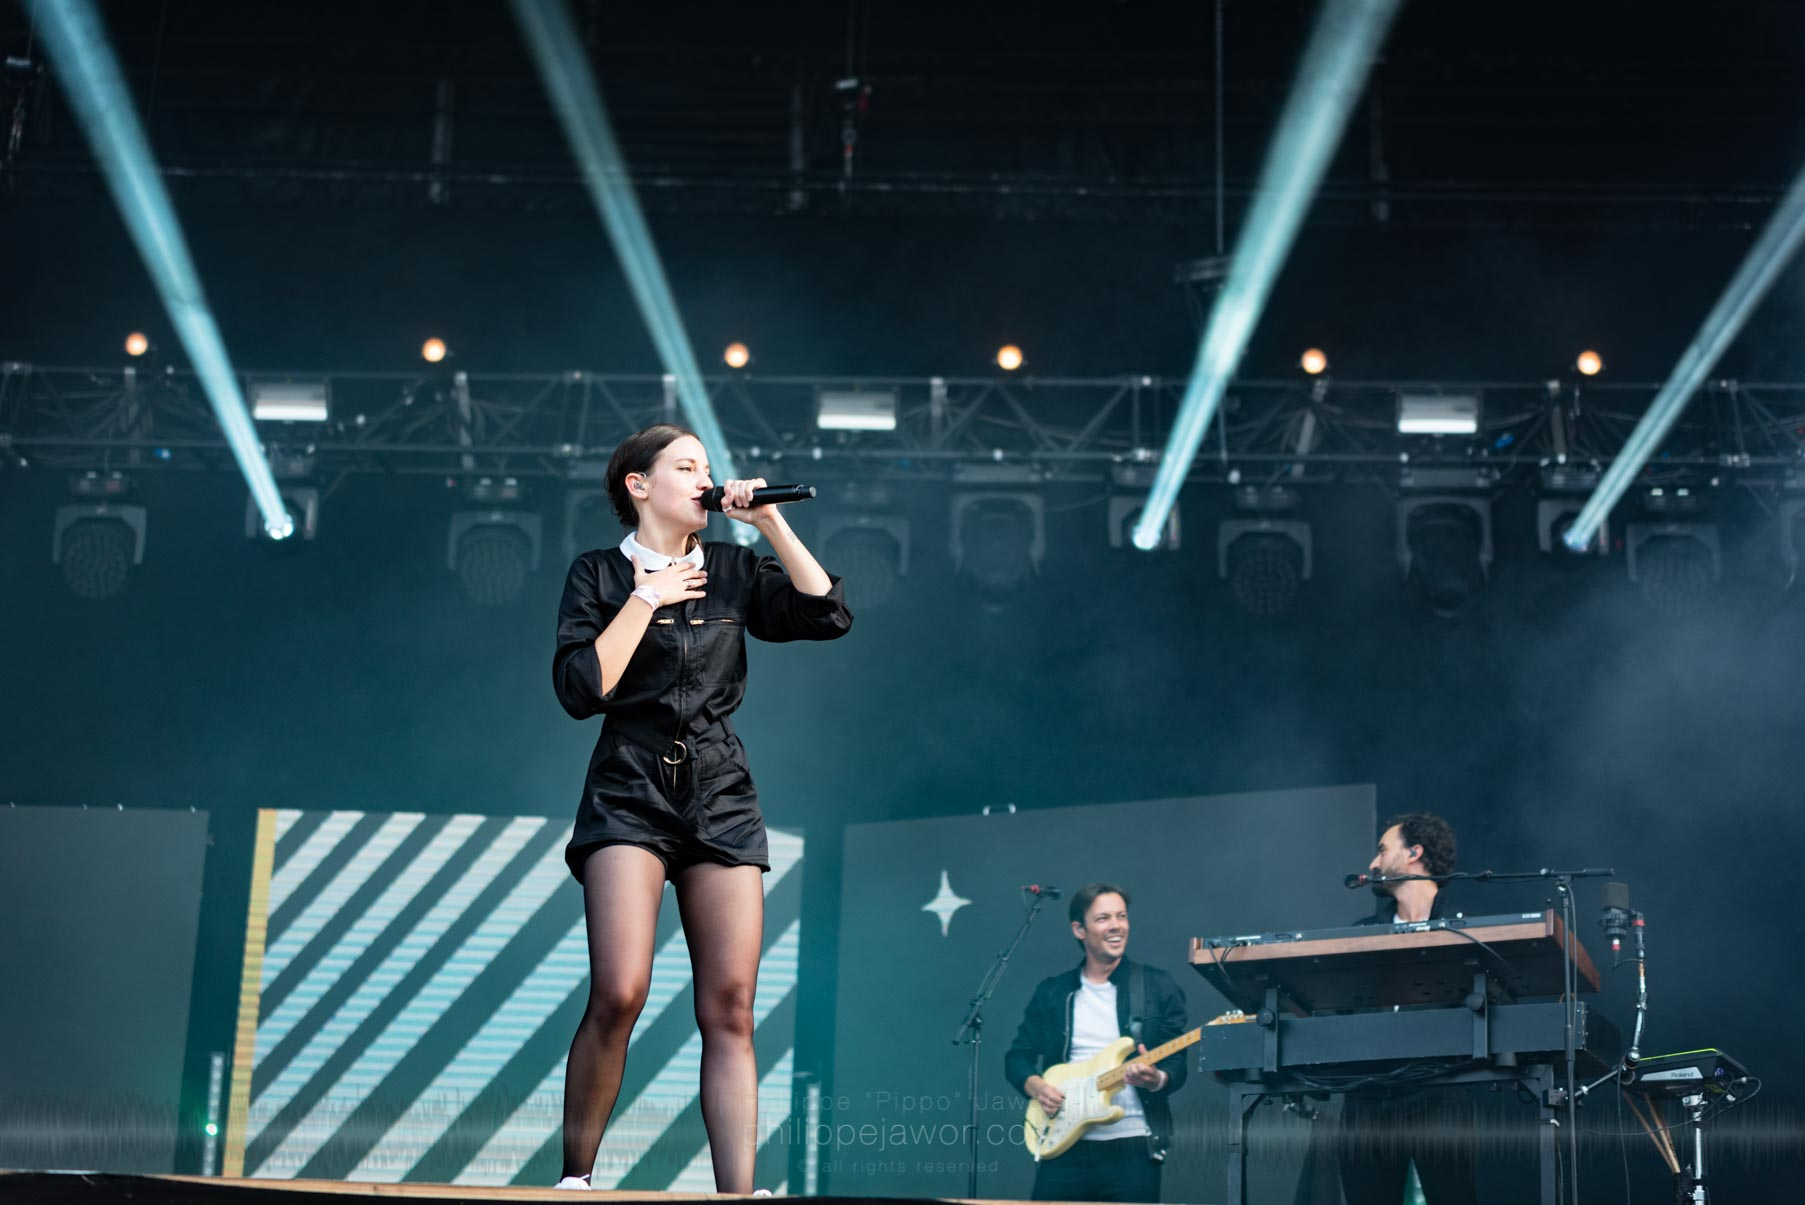 """The French pop artist Jeanne """"Jain"""" Galice, live at Rock en Seine festival, Paris, France, August 2017.  On assignment for ZYVA Magazine All rights reserved."""